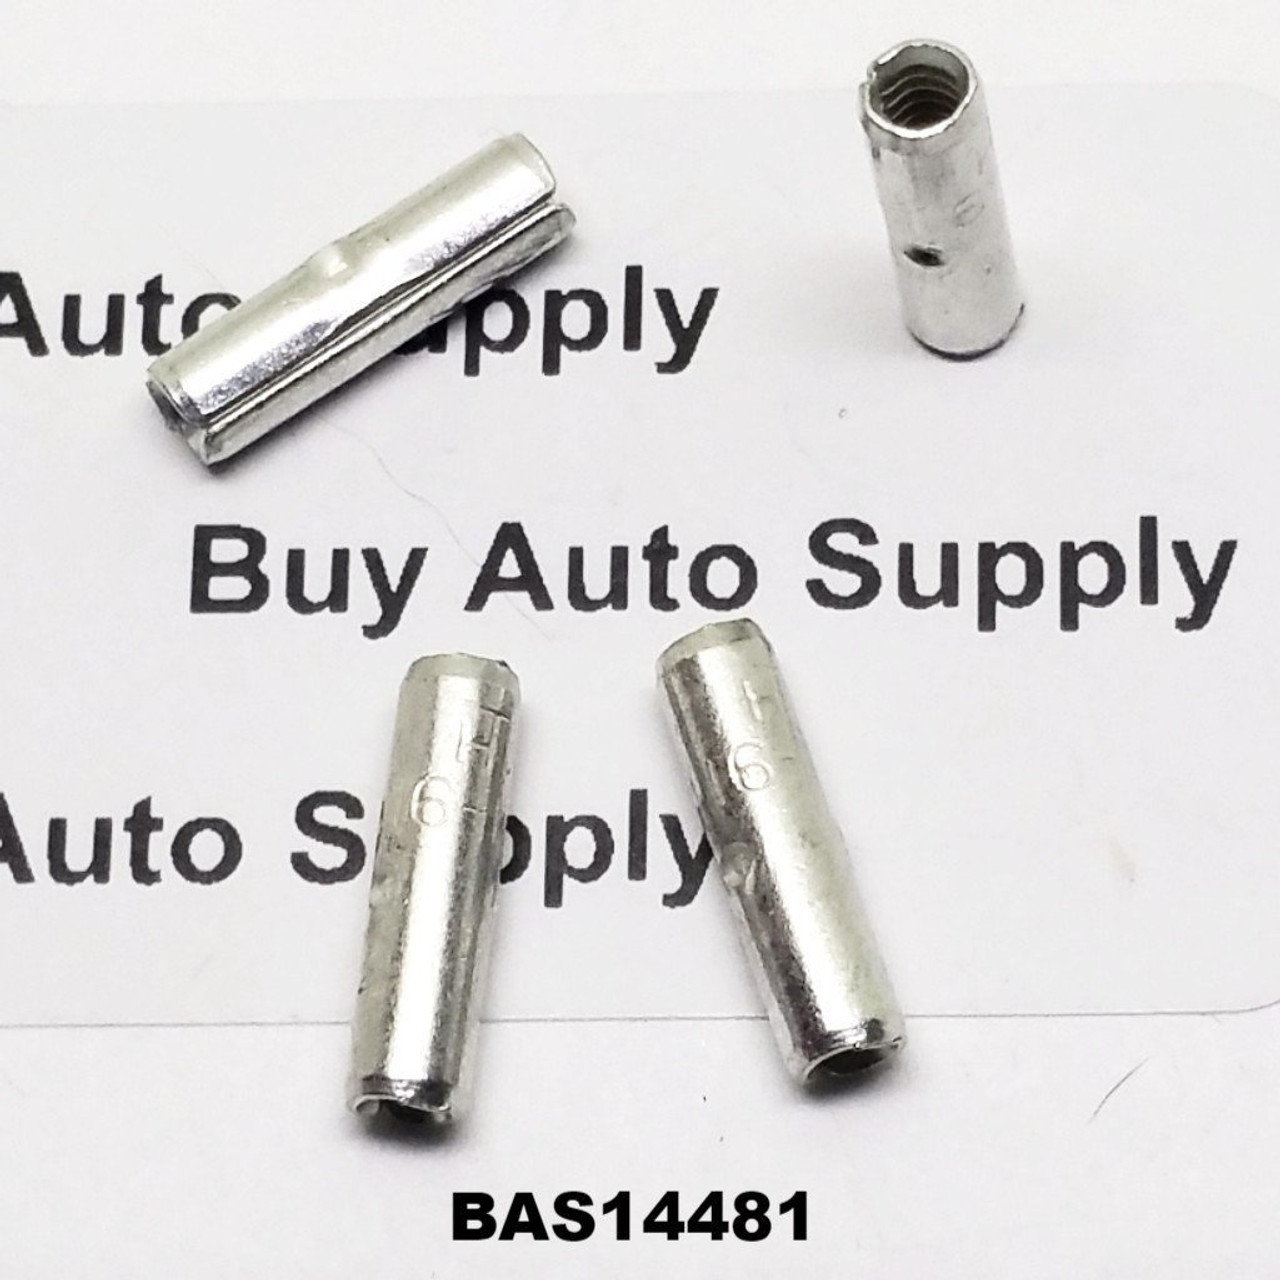 16-14 Non-Insulated Butt Connector - Made in USA- BAS14481